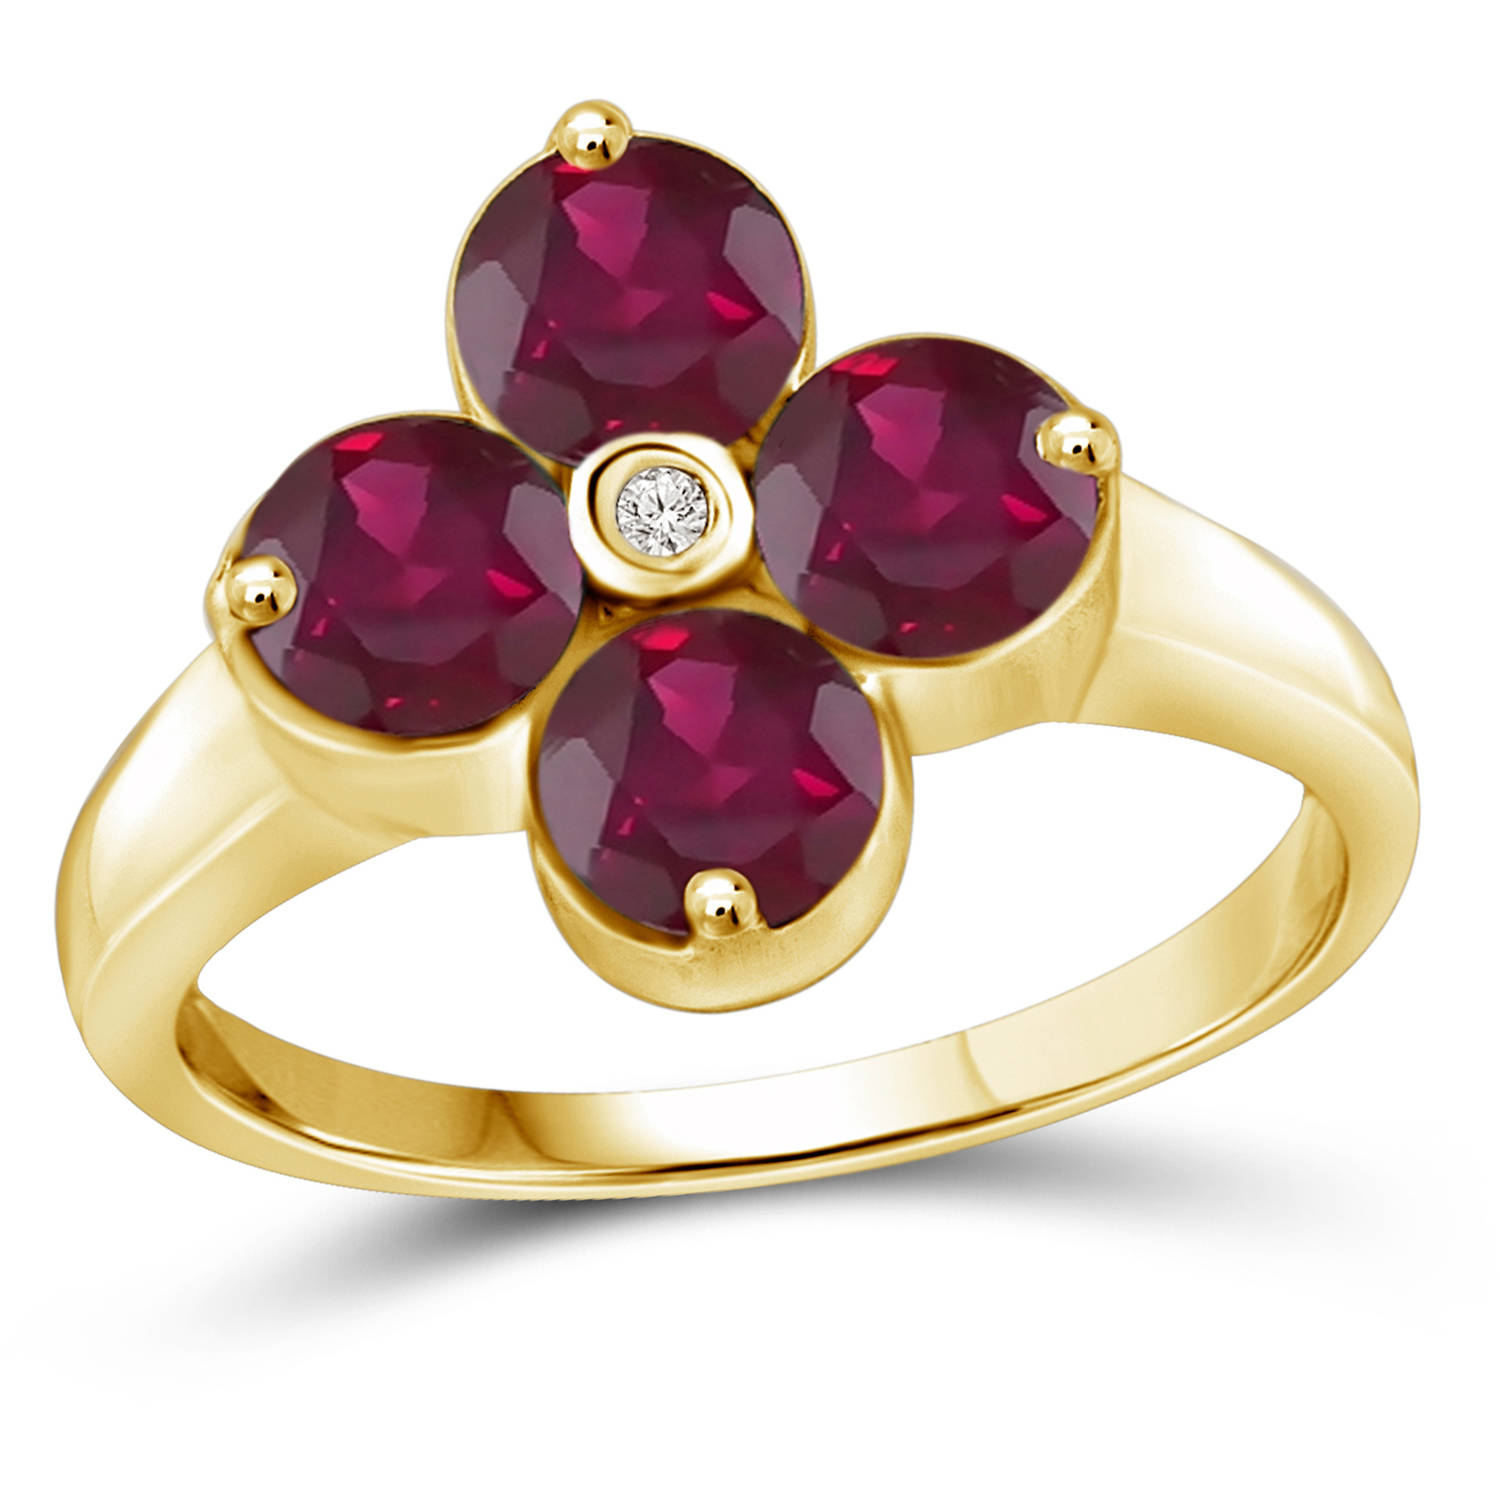 JewelersClub 2.72 Carat T.G.W. Ruby Gemstone and White Diamond Accent Gold over Sterling Silver Ring by JewelersClub